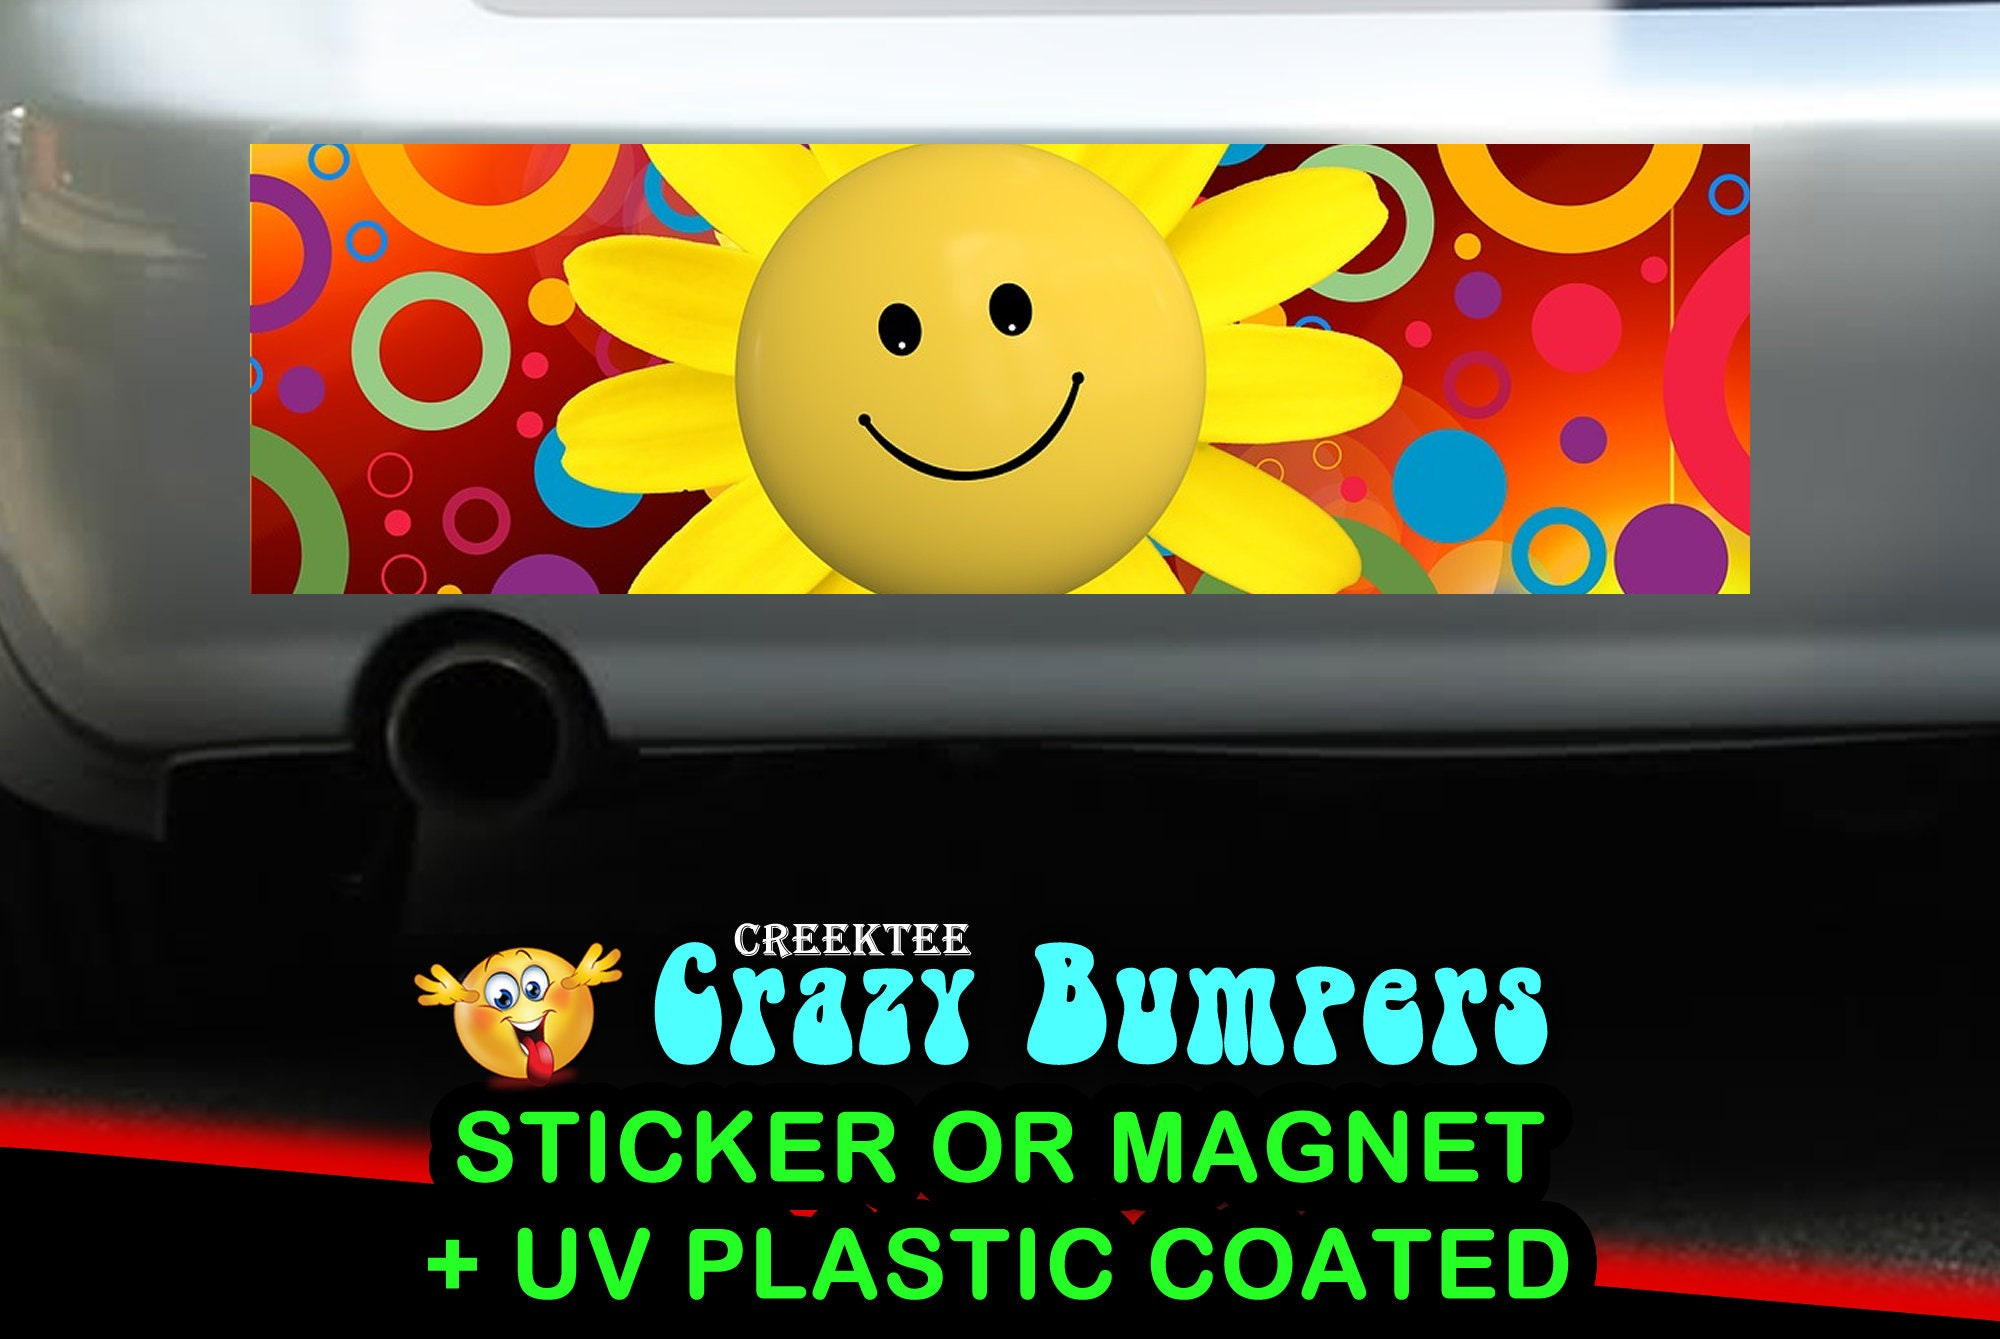 CAD$9.74 - Happy Face Emoji 10 x 3 Bumper Sticker or Magnetic Bumper Sticker Available